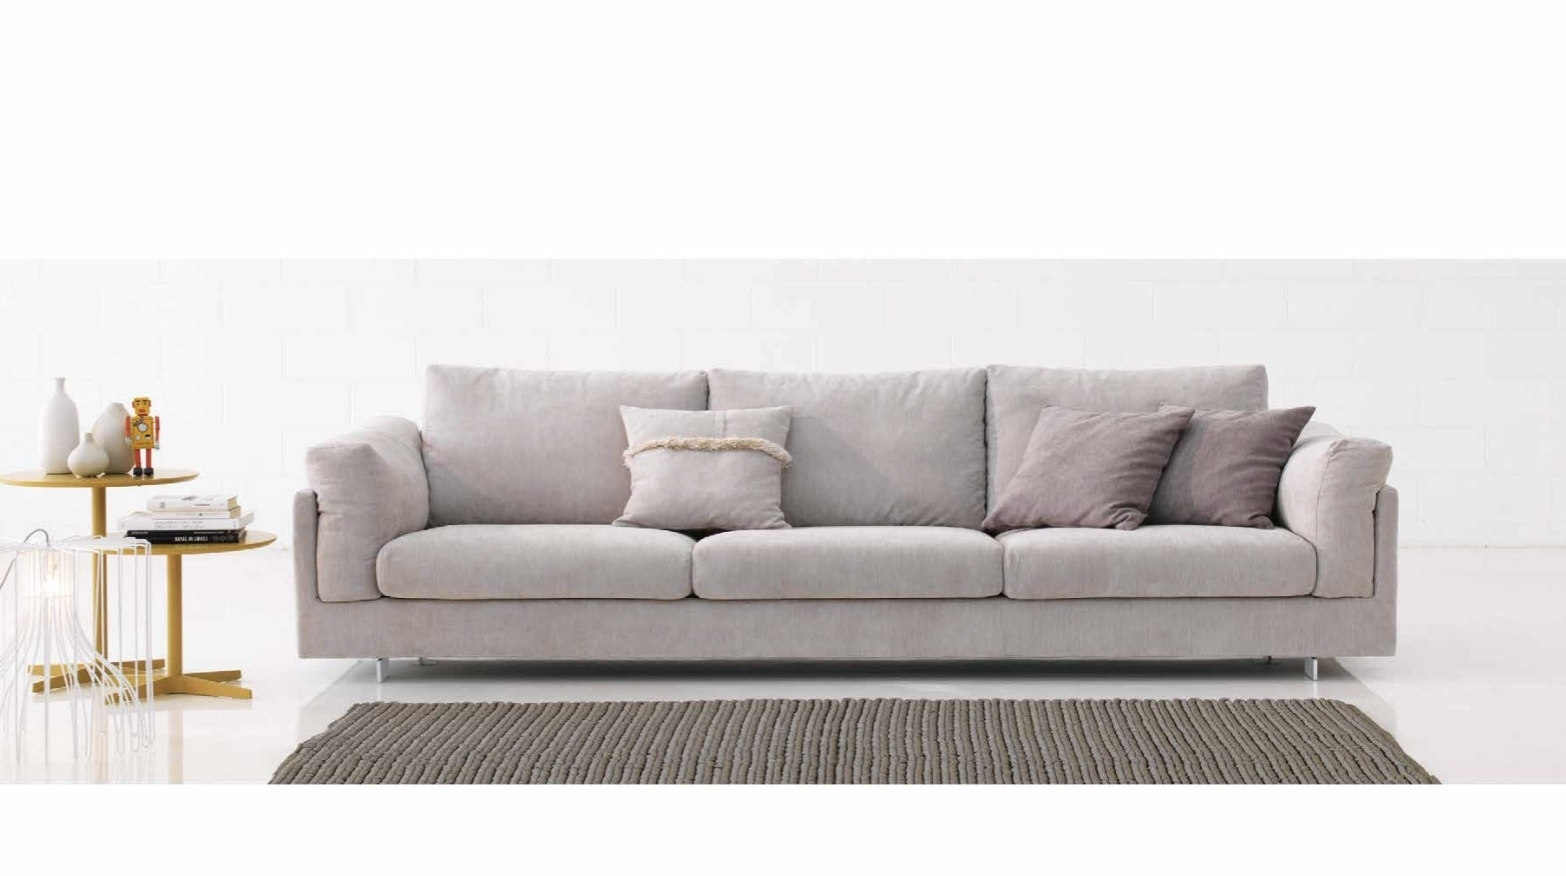 Comfortable Sofas And Chairs In Current Italian Sofas At Momentoitalia – Modern Sofas,designer Sofas (View 2 of 15)